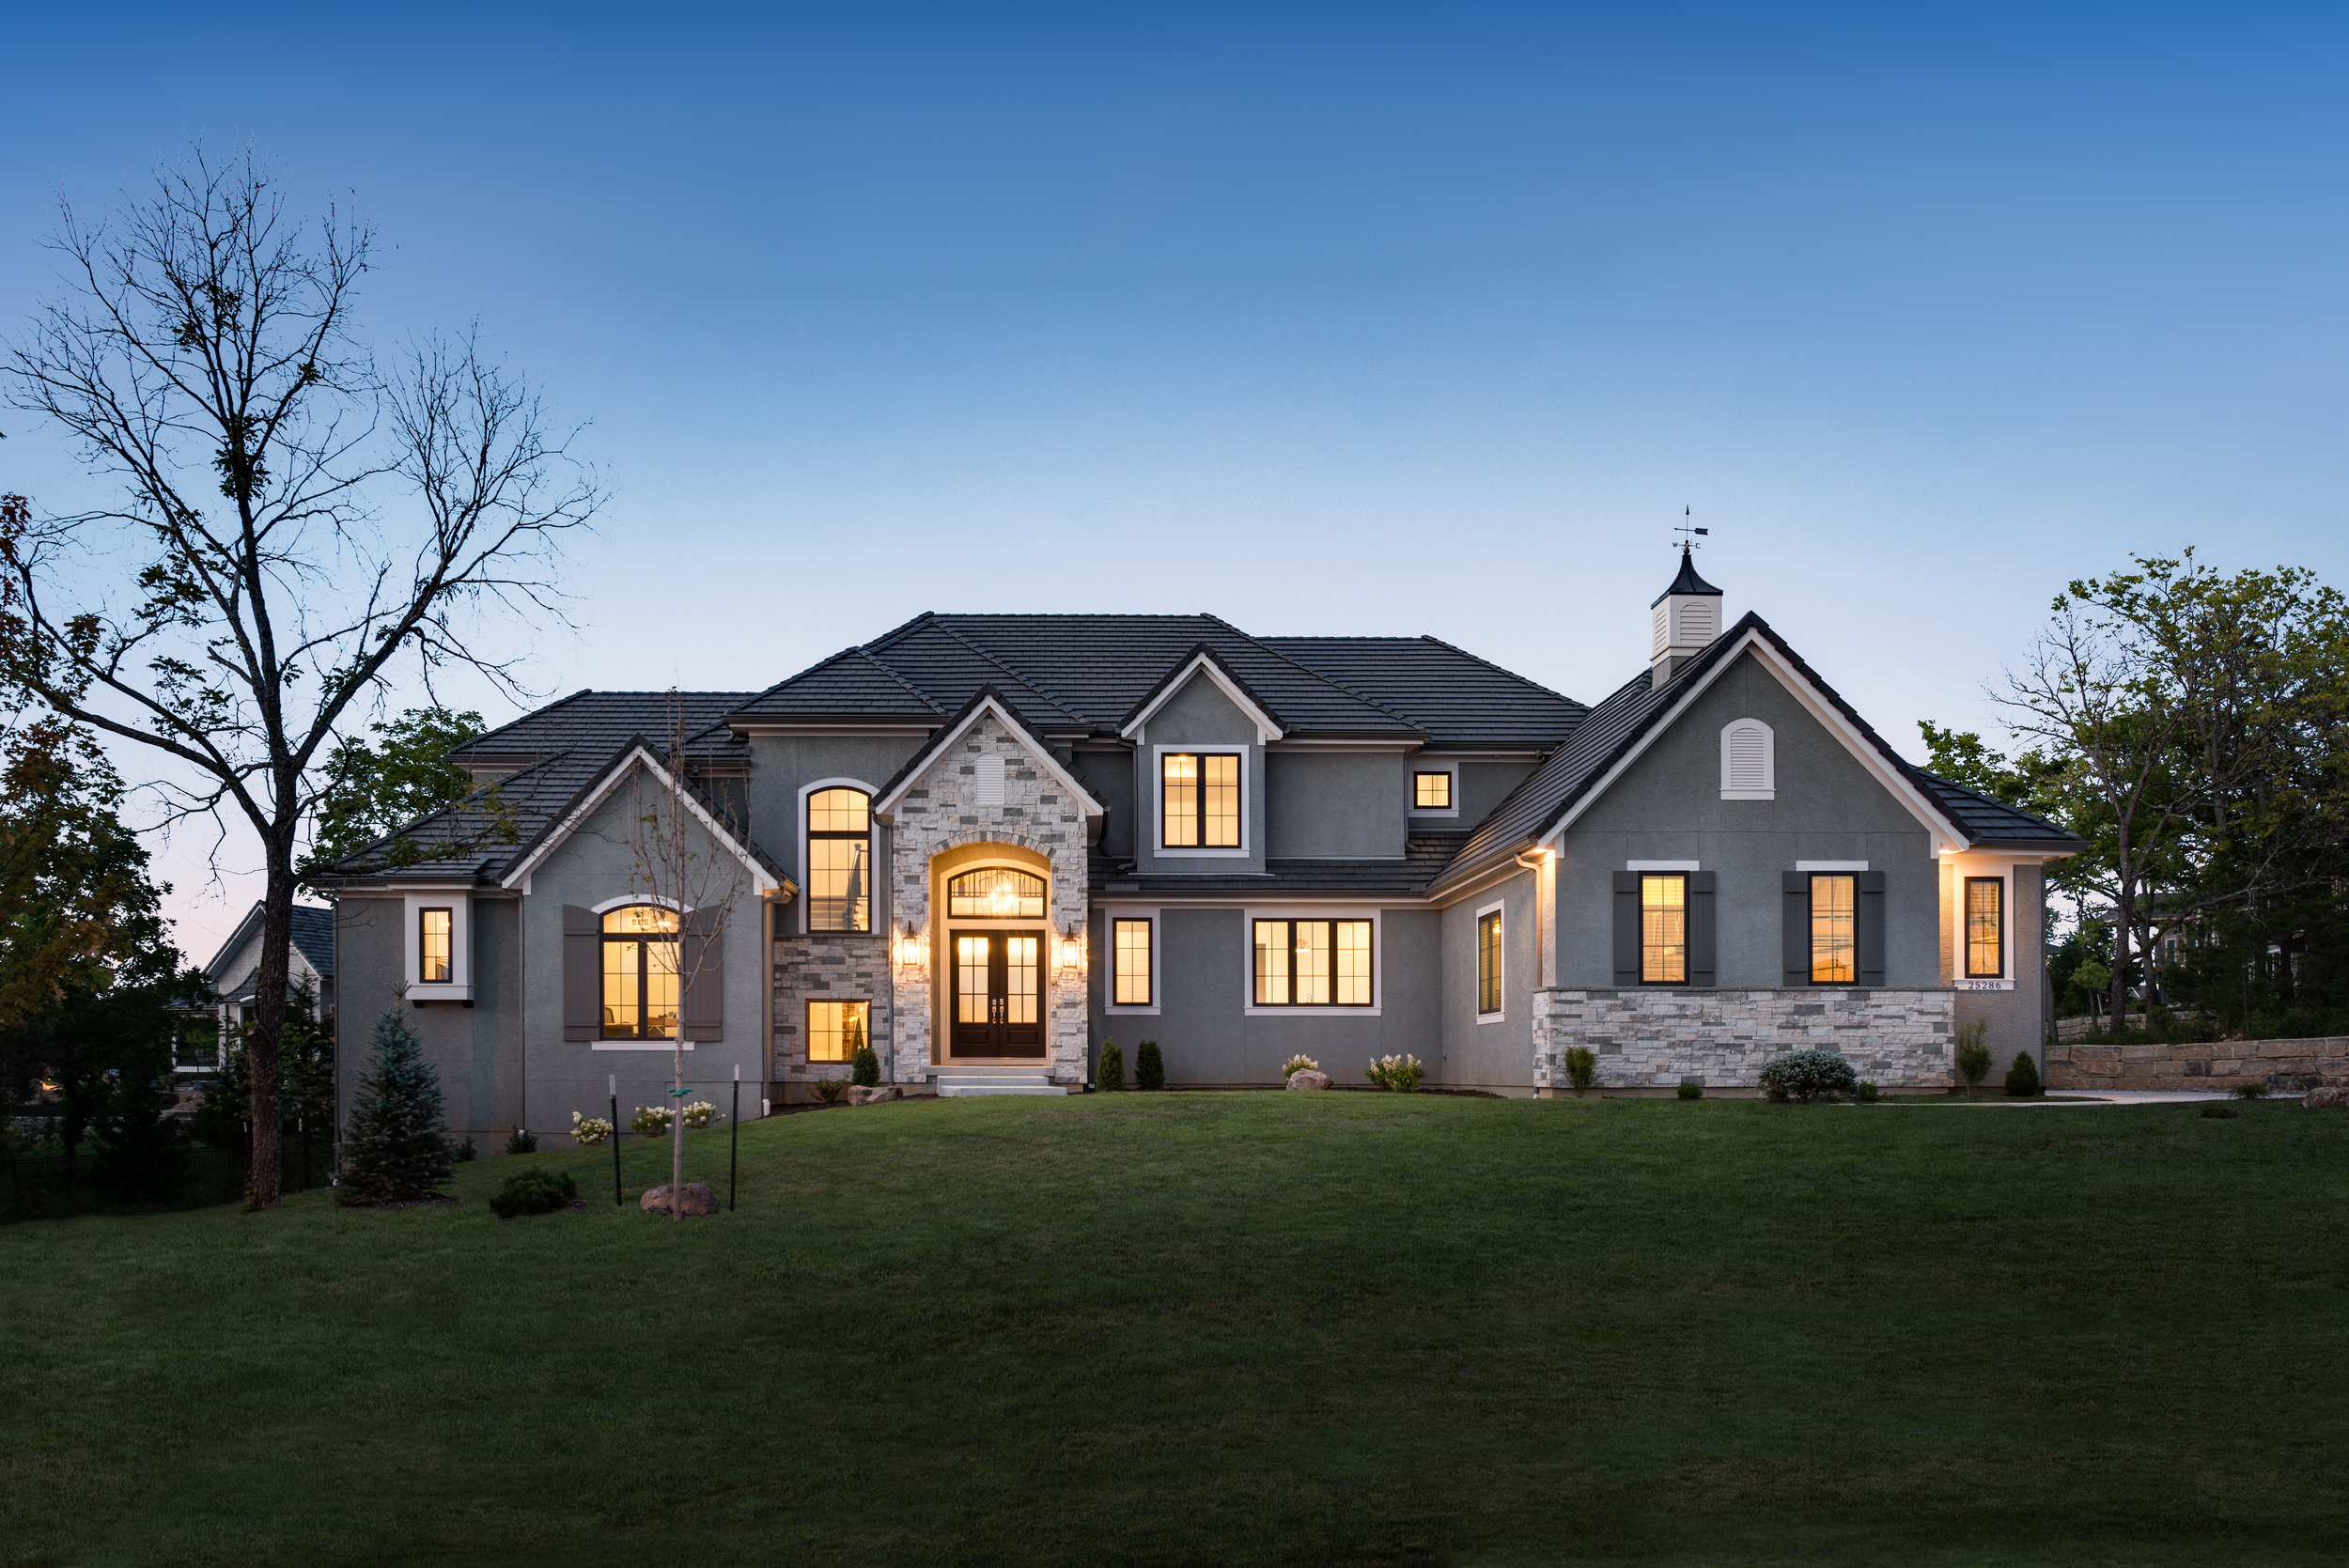 25286 W 106th Ter, Olathe-2.jpg